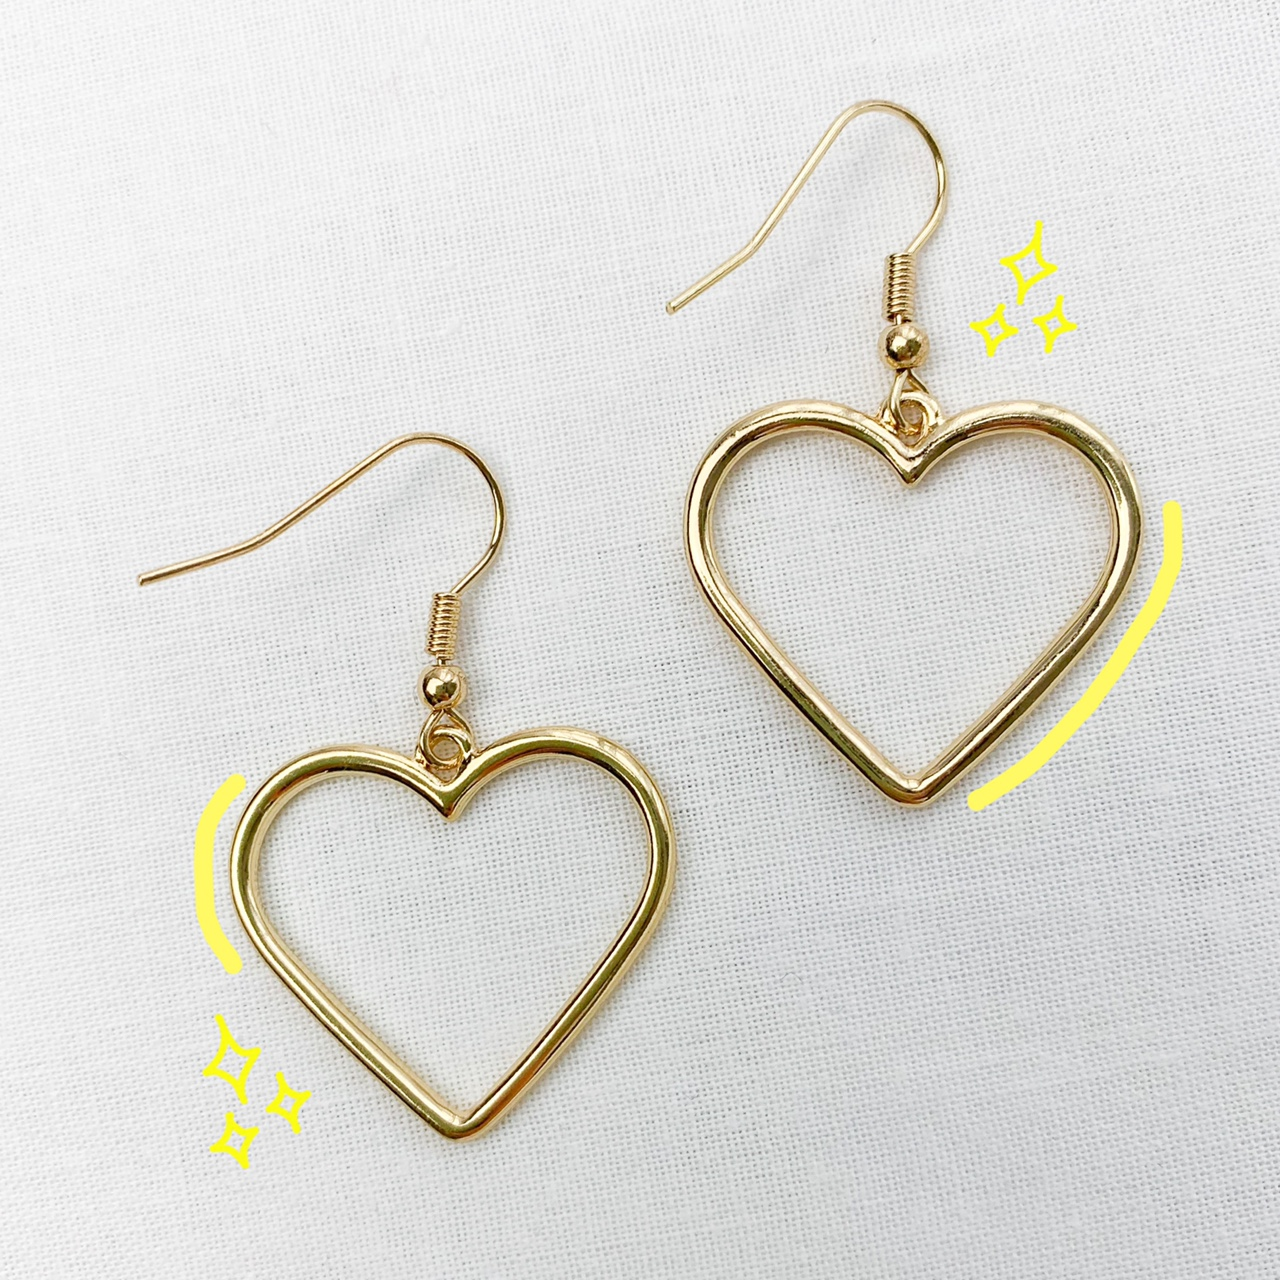 ✨ Gold Plated Heart Earrings ✨